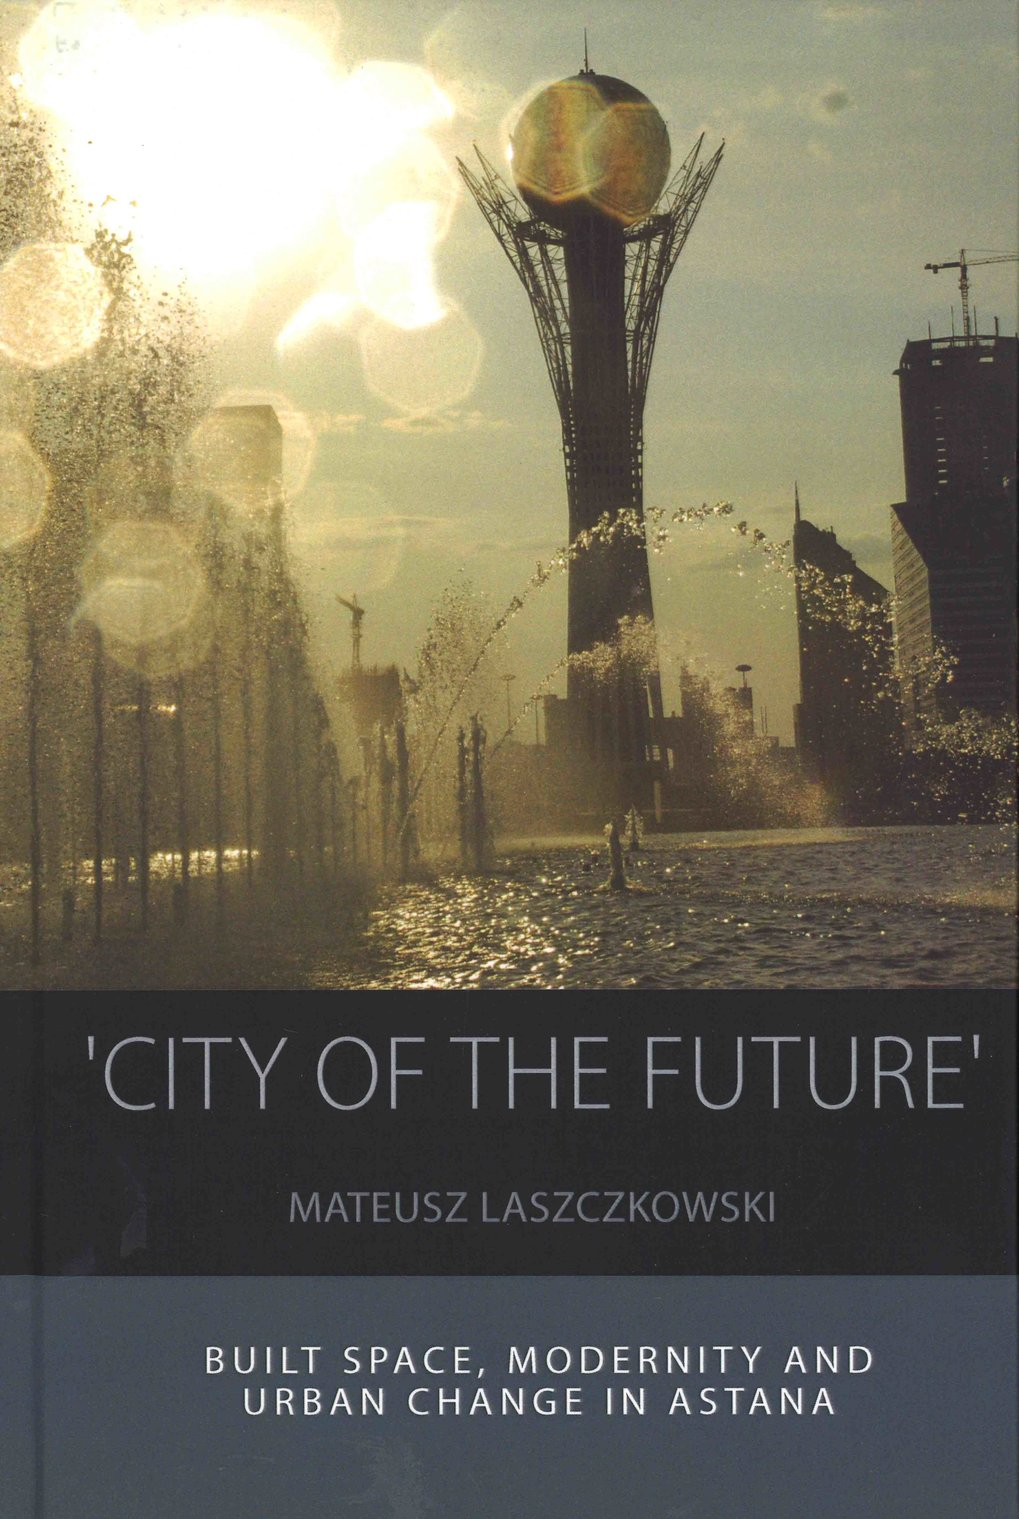 'City of the Future'. Built space, modernity and urban change in Astana